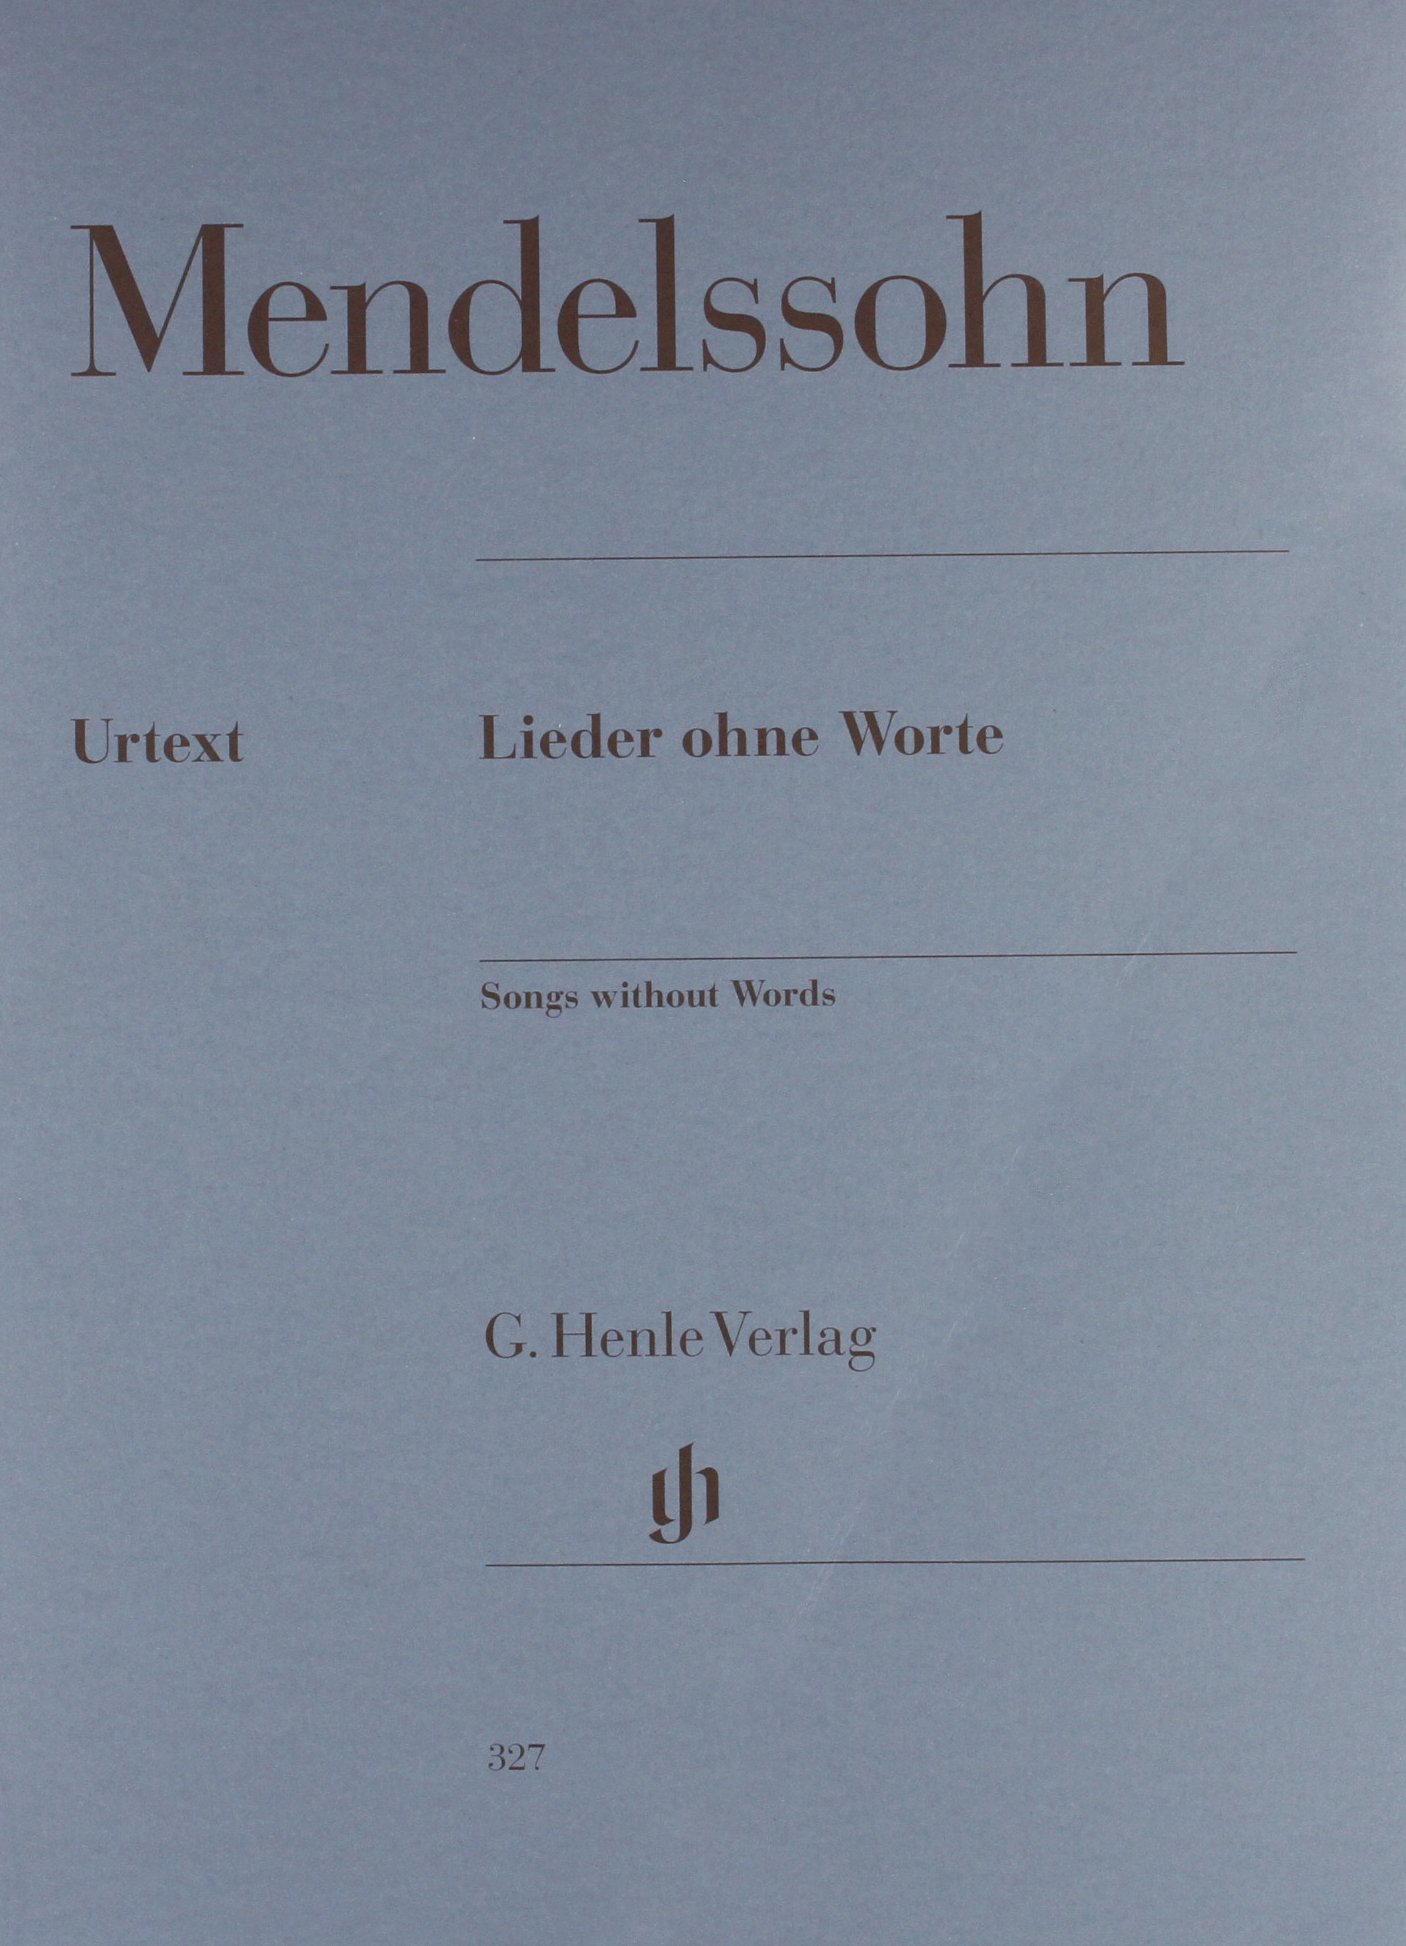 Songs Without Words Lieder Ohne Worte Paperback G. Henle Verlag B003AH394O 51480327